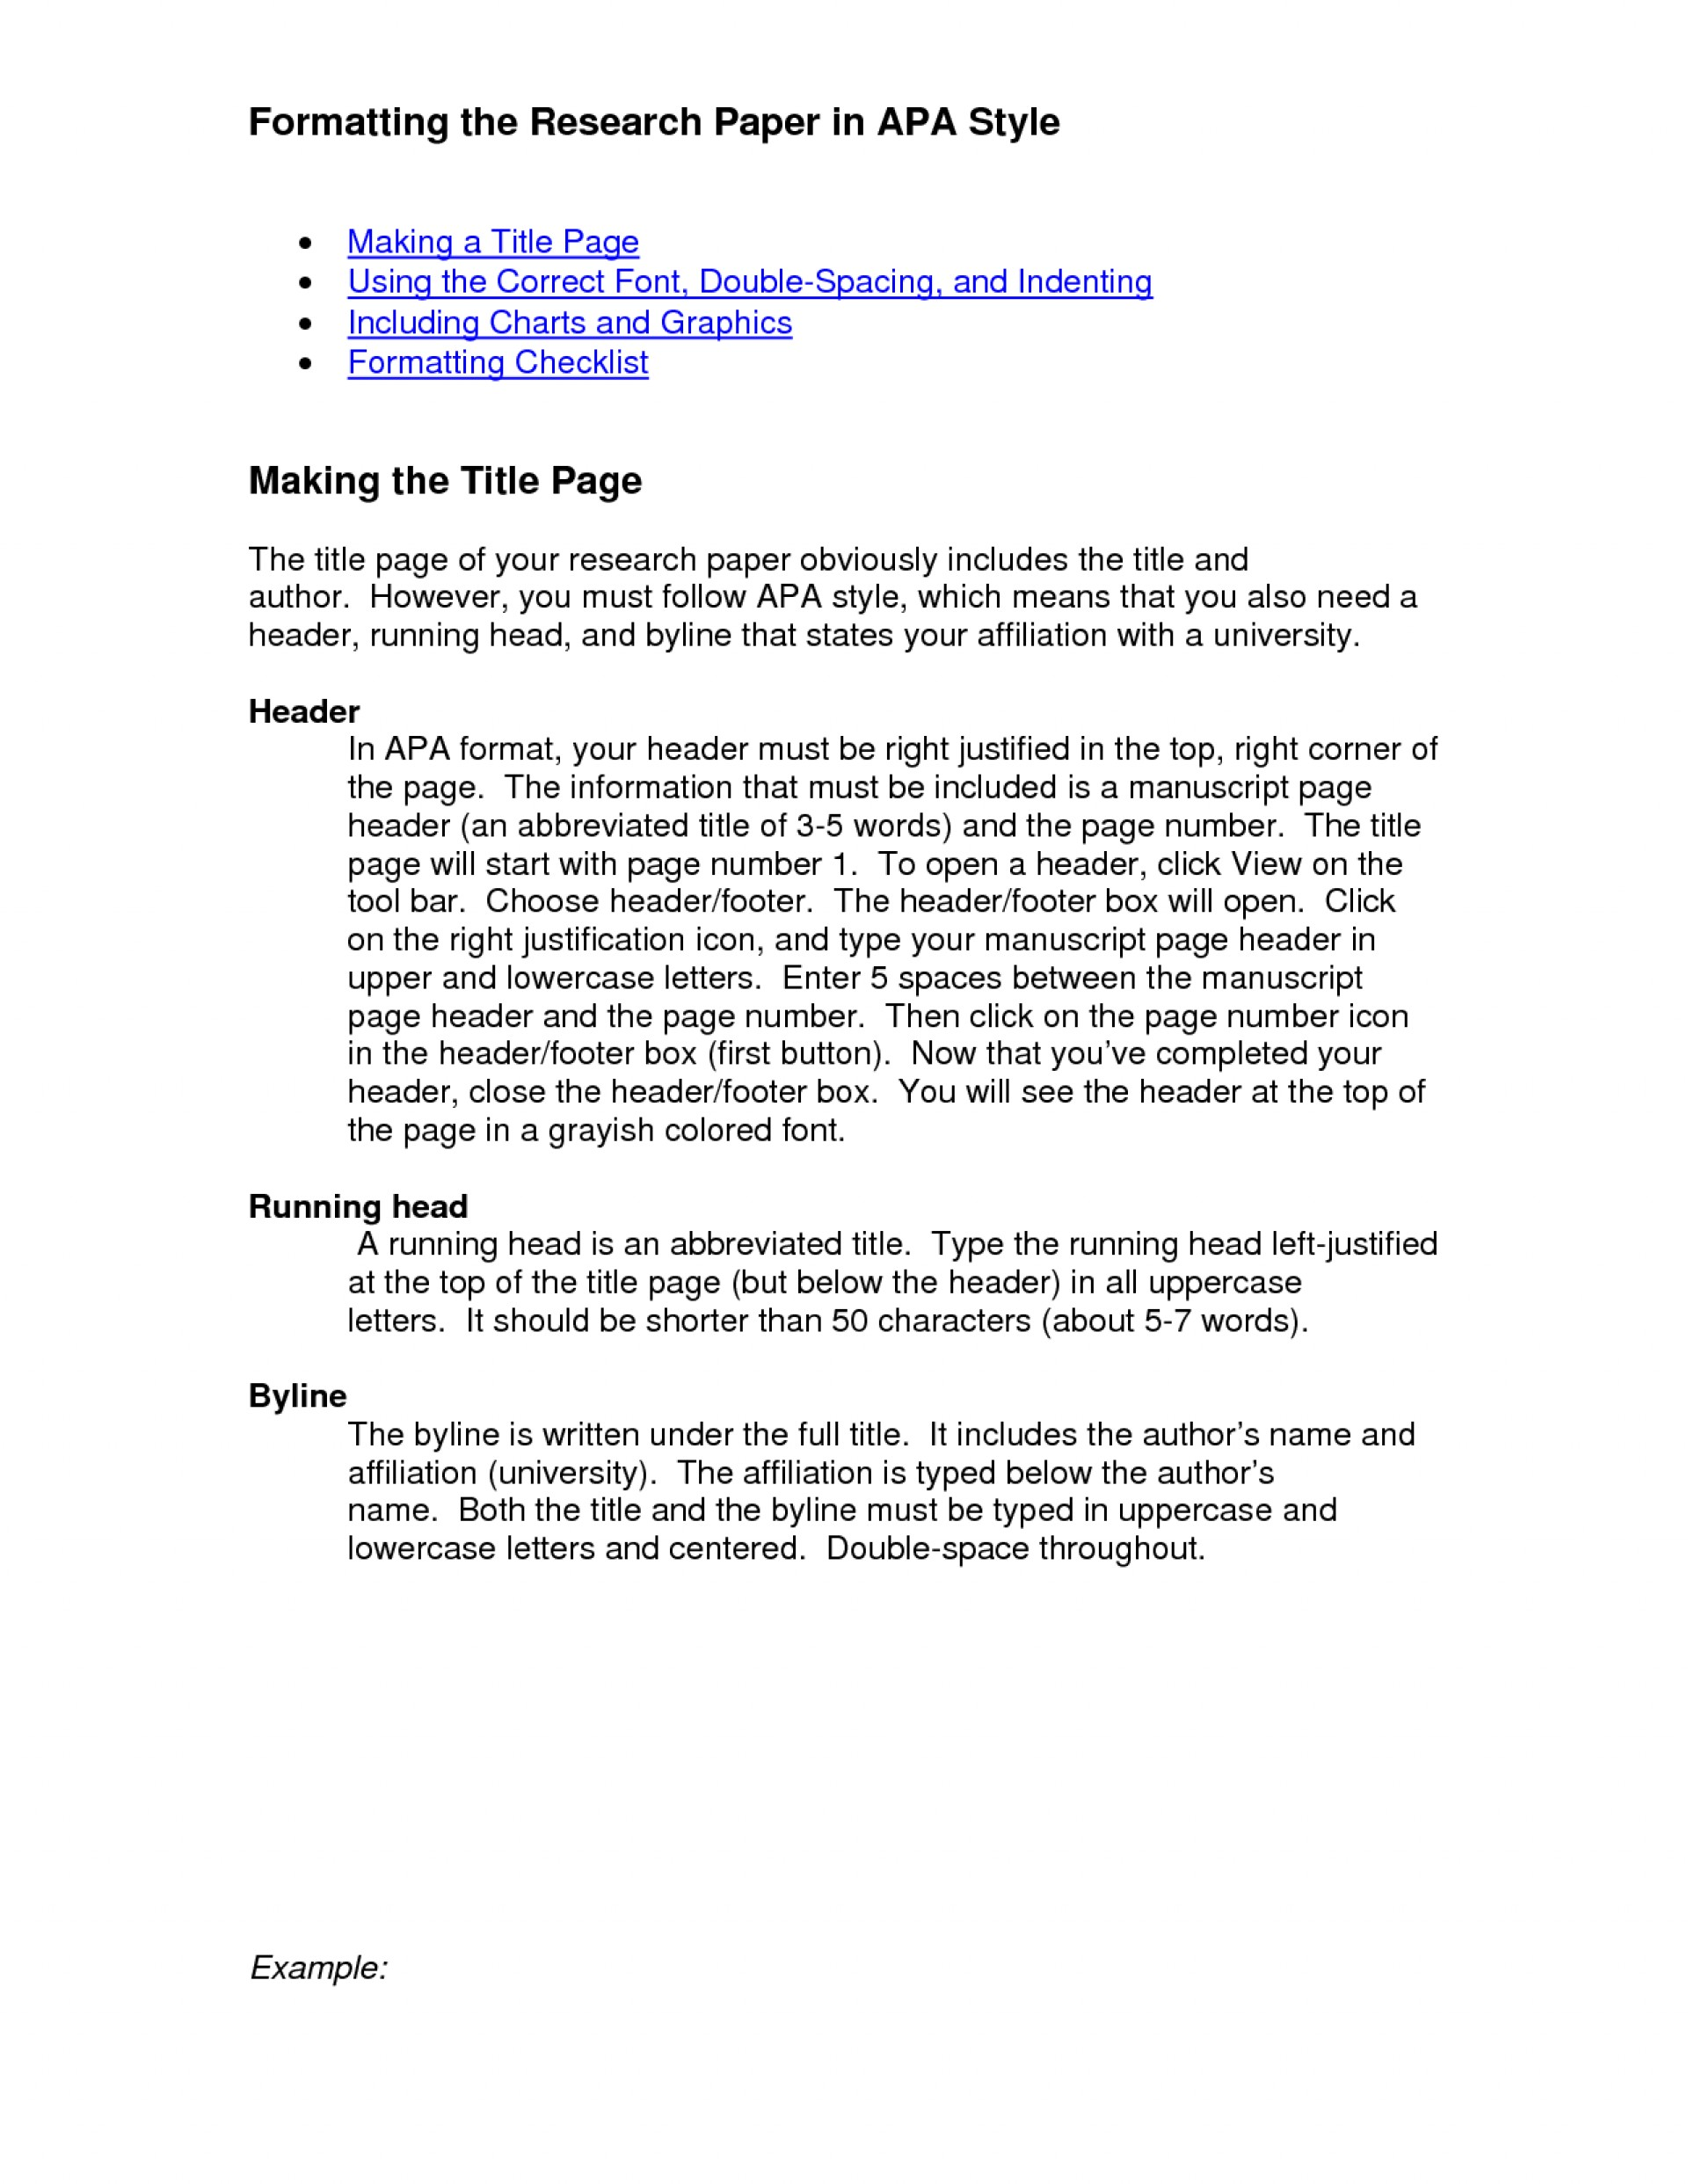 005 Research Paper 2mefq6rl5g How To Make Citations In Unusual A Apa 1920